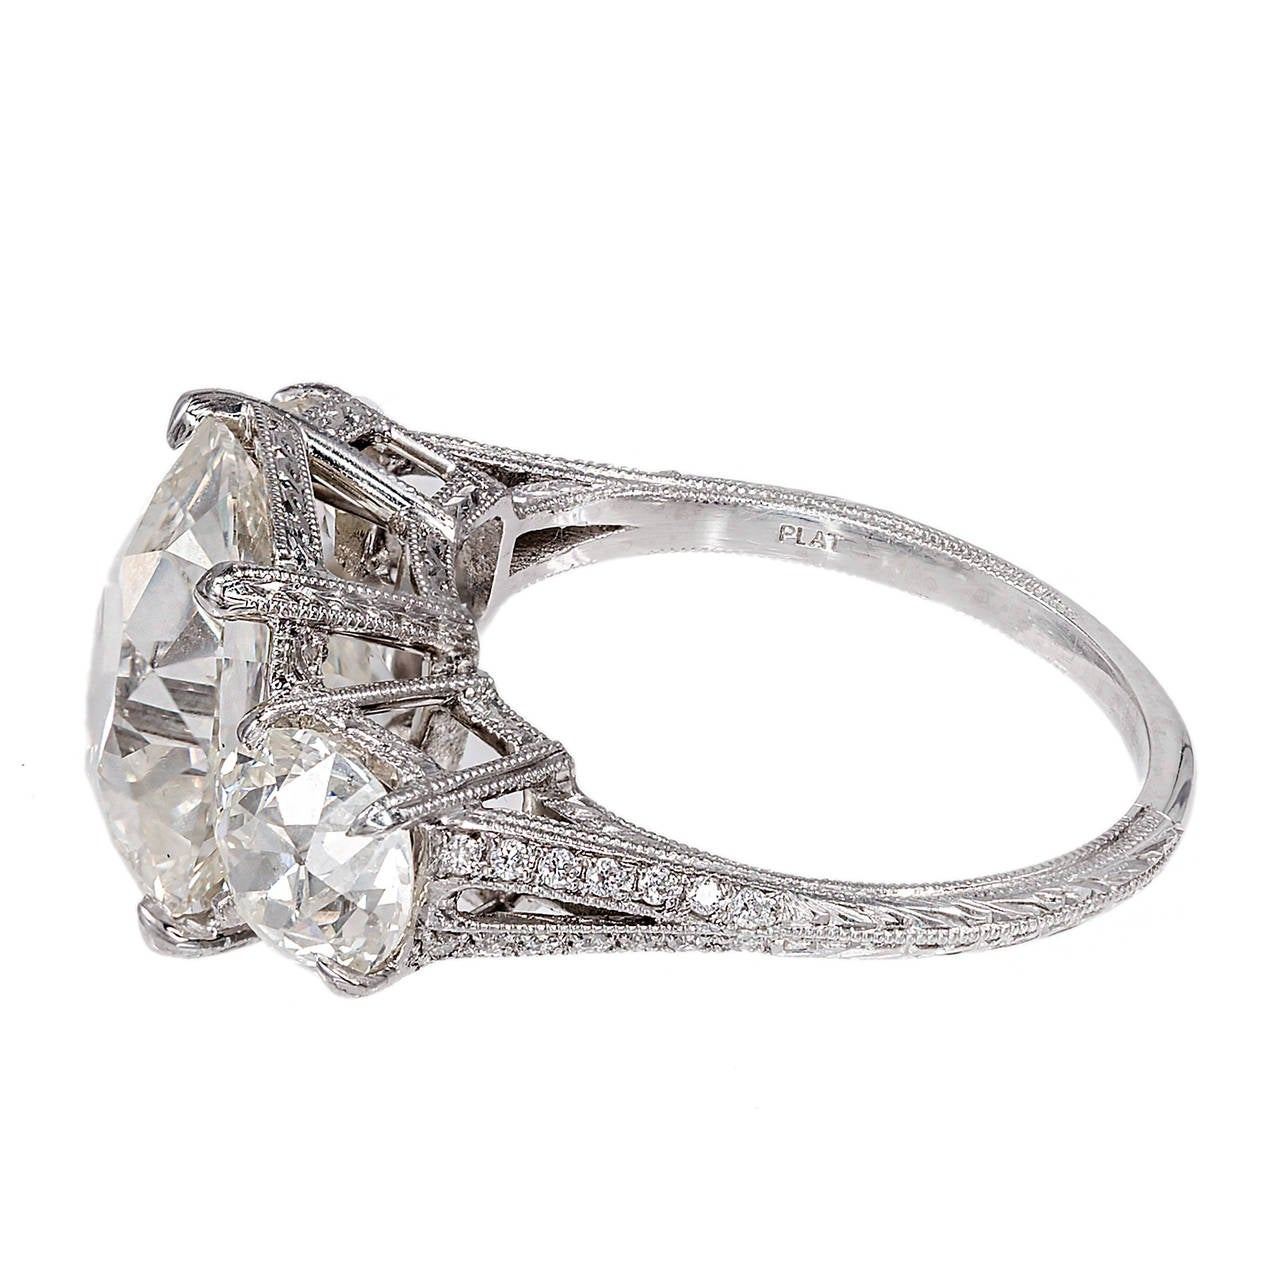 Antique Old Mine Cushion Cut Diamond Platinum Ring For Sale at 1stdibs